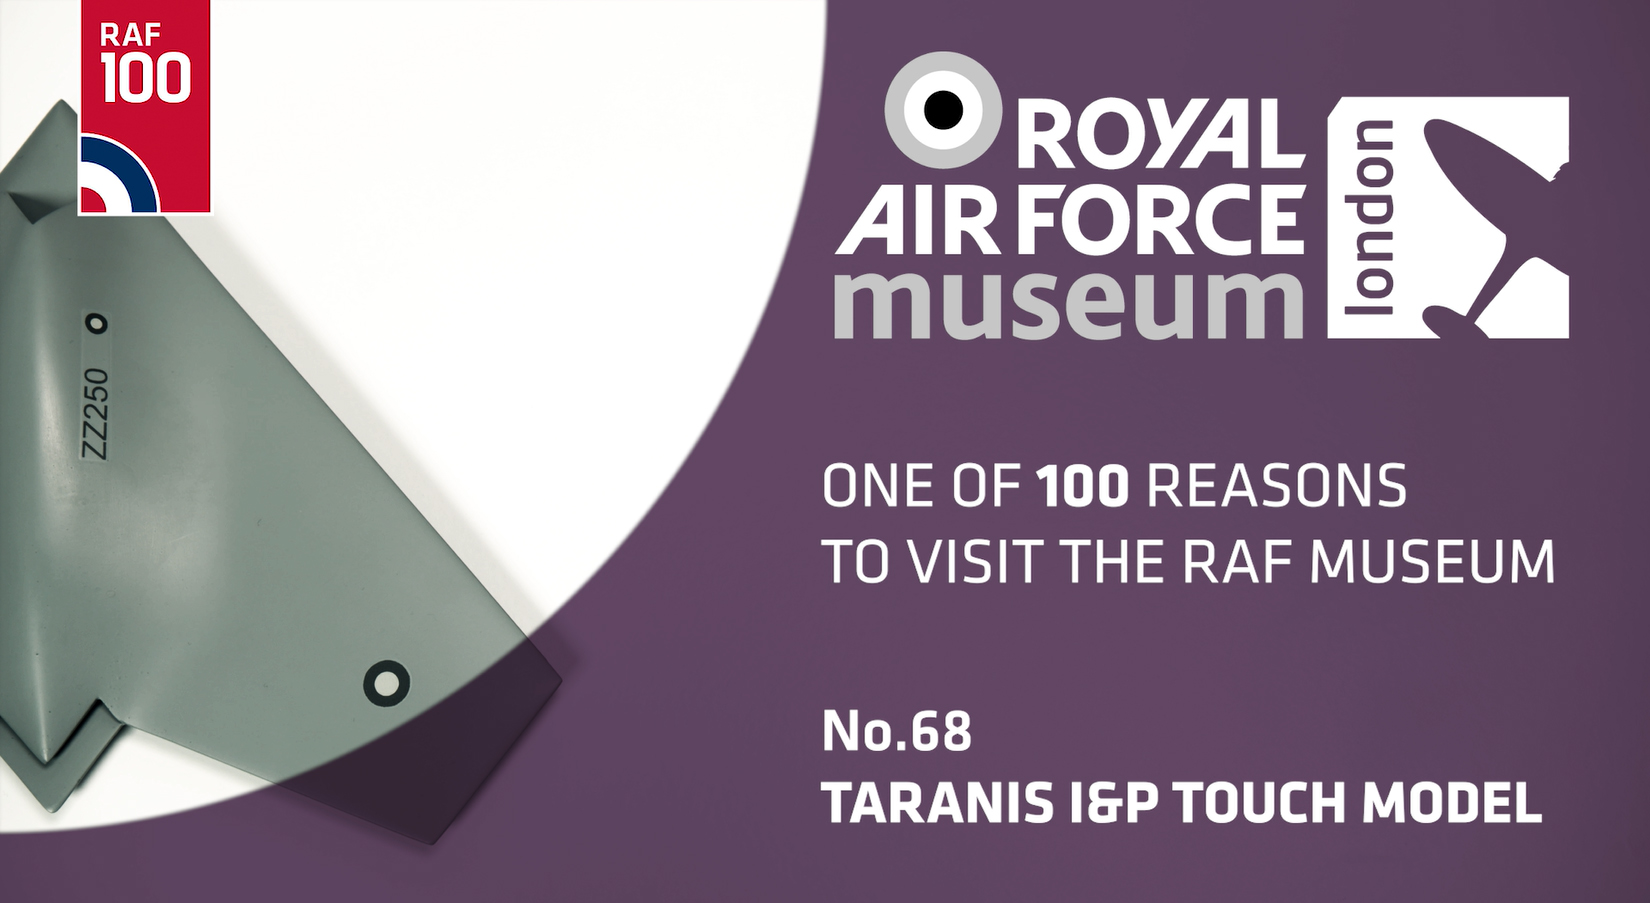 Taranis I&P Touch Model - one of 100 reasons to visit the RAF Museum